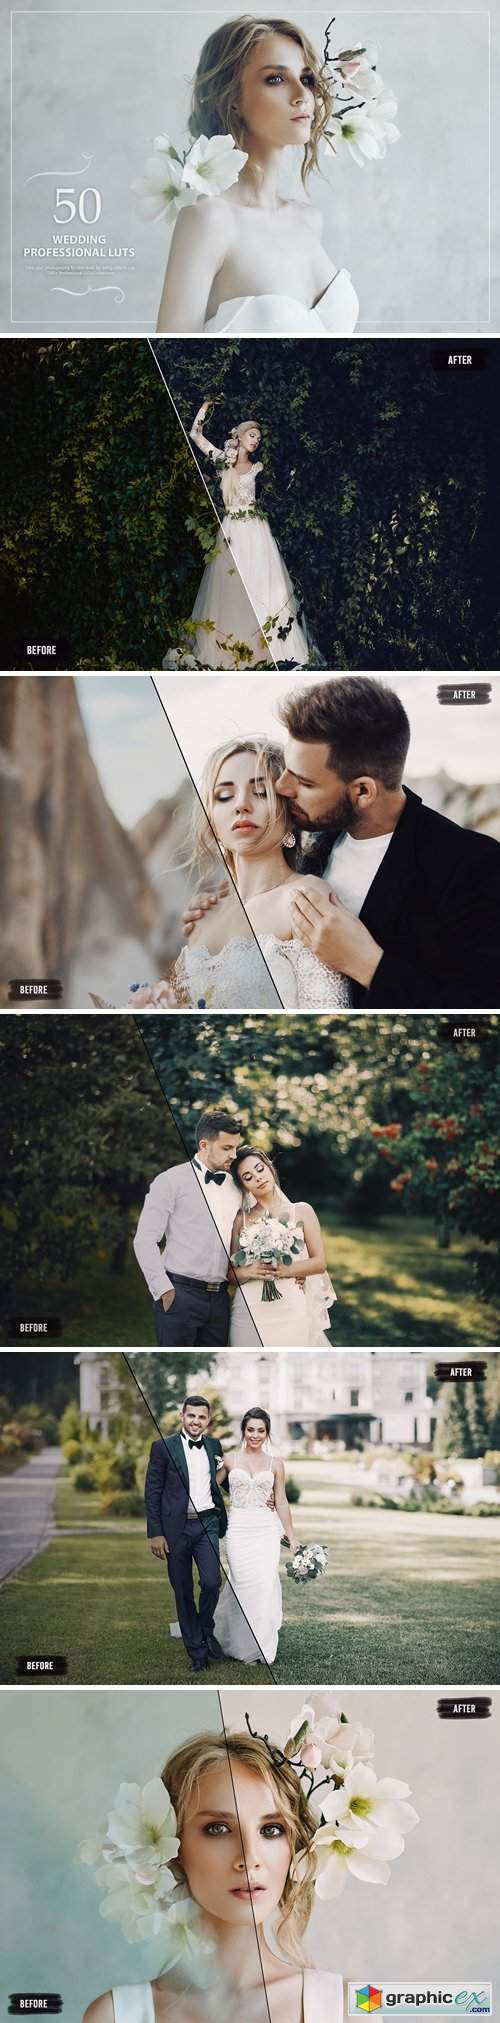 50 Wedding LUTs (Look Up Tables)